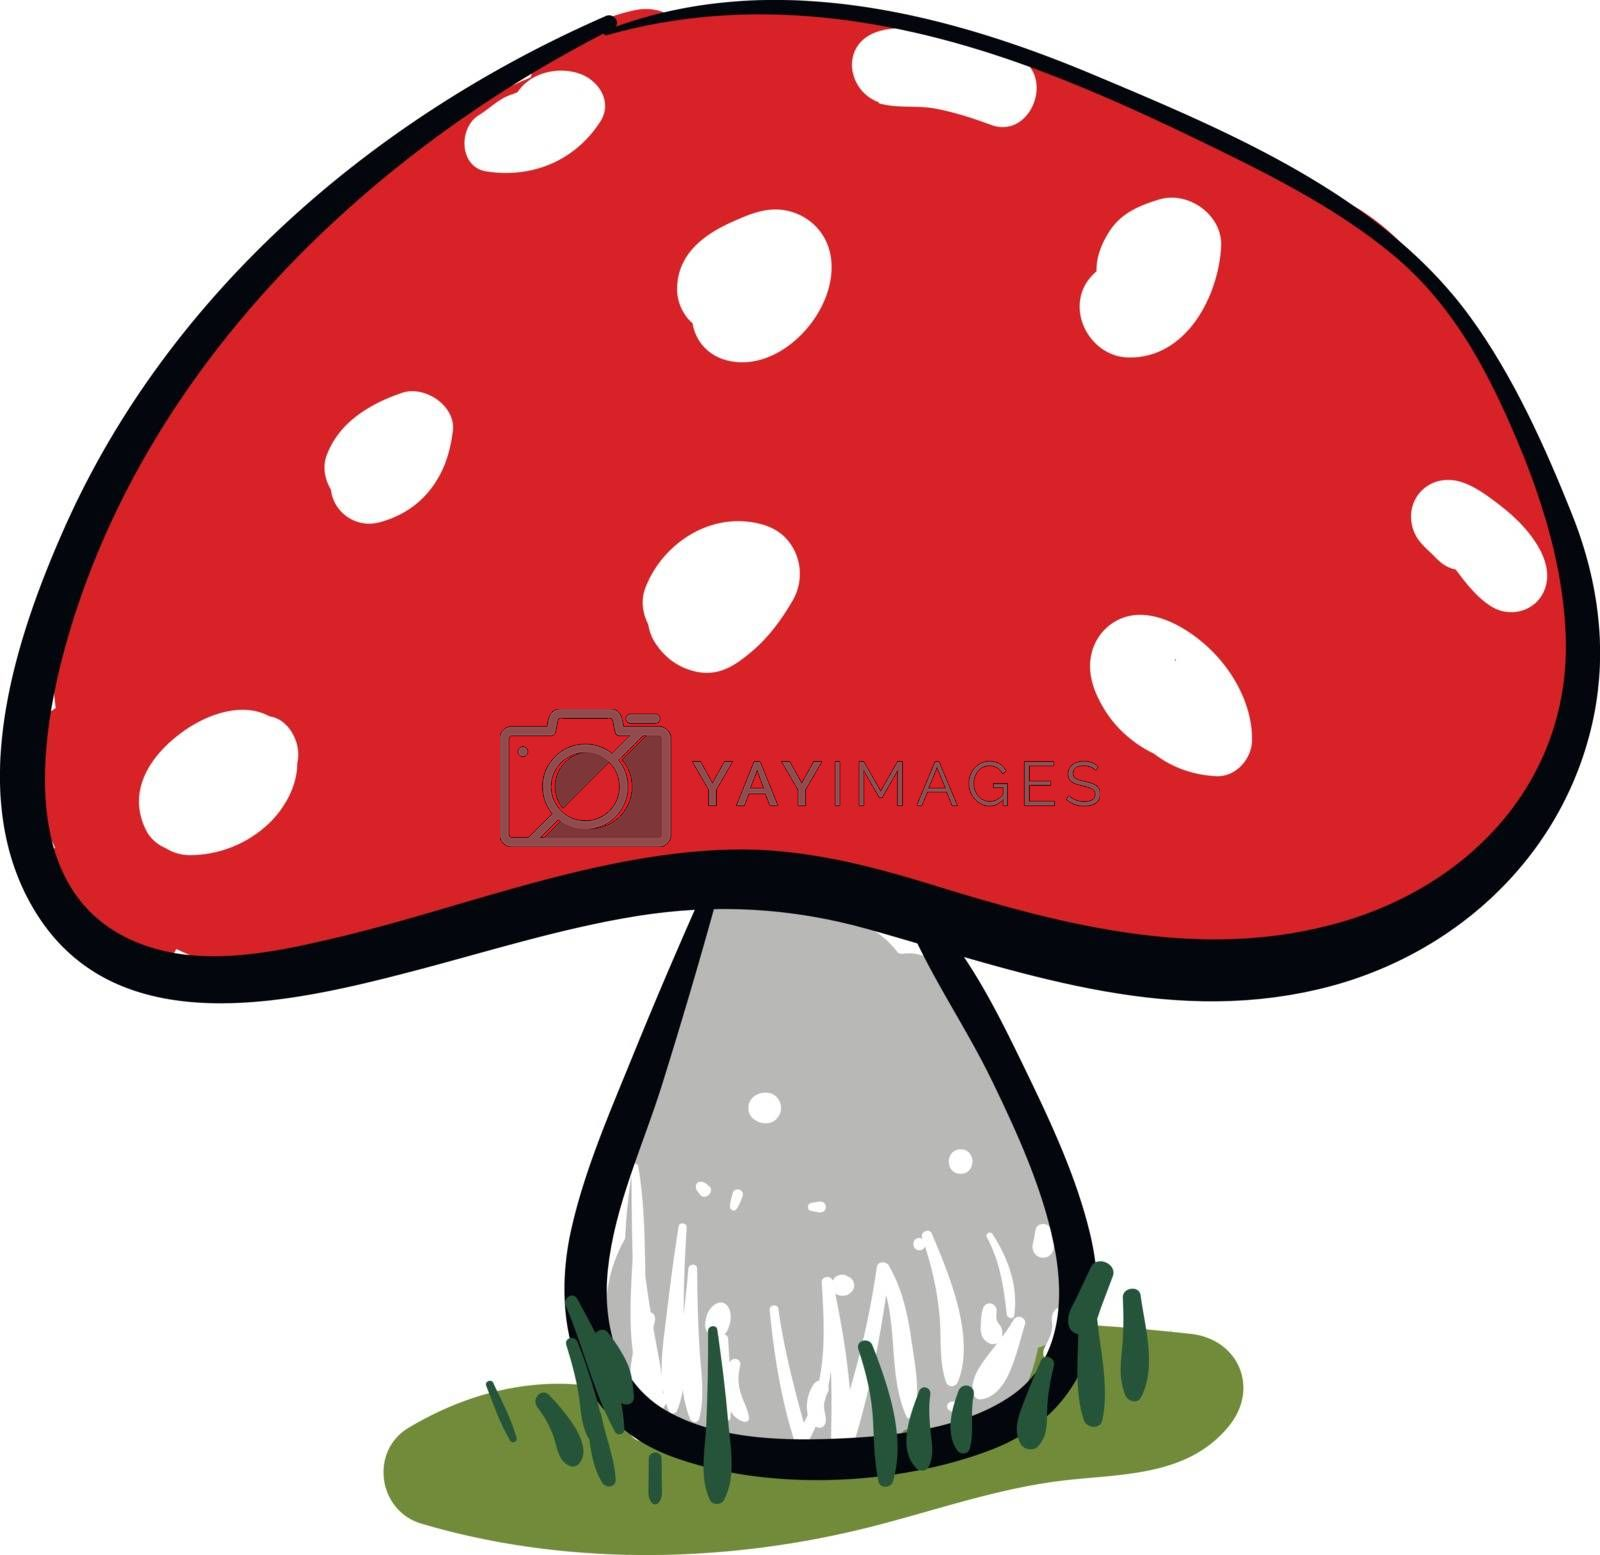 Royalty free image of Clipart of a red mushroom vector or color illustration by Morphart